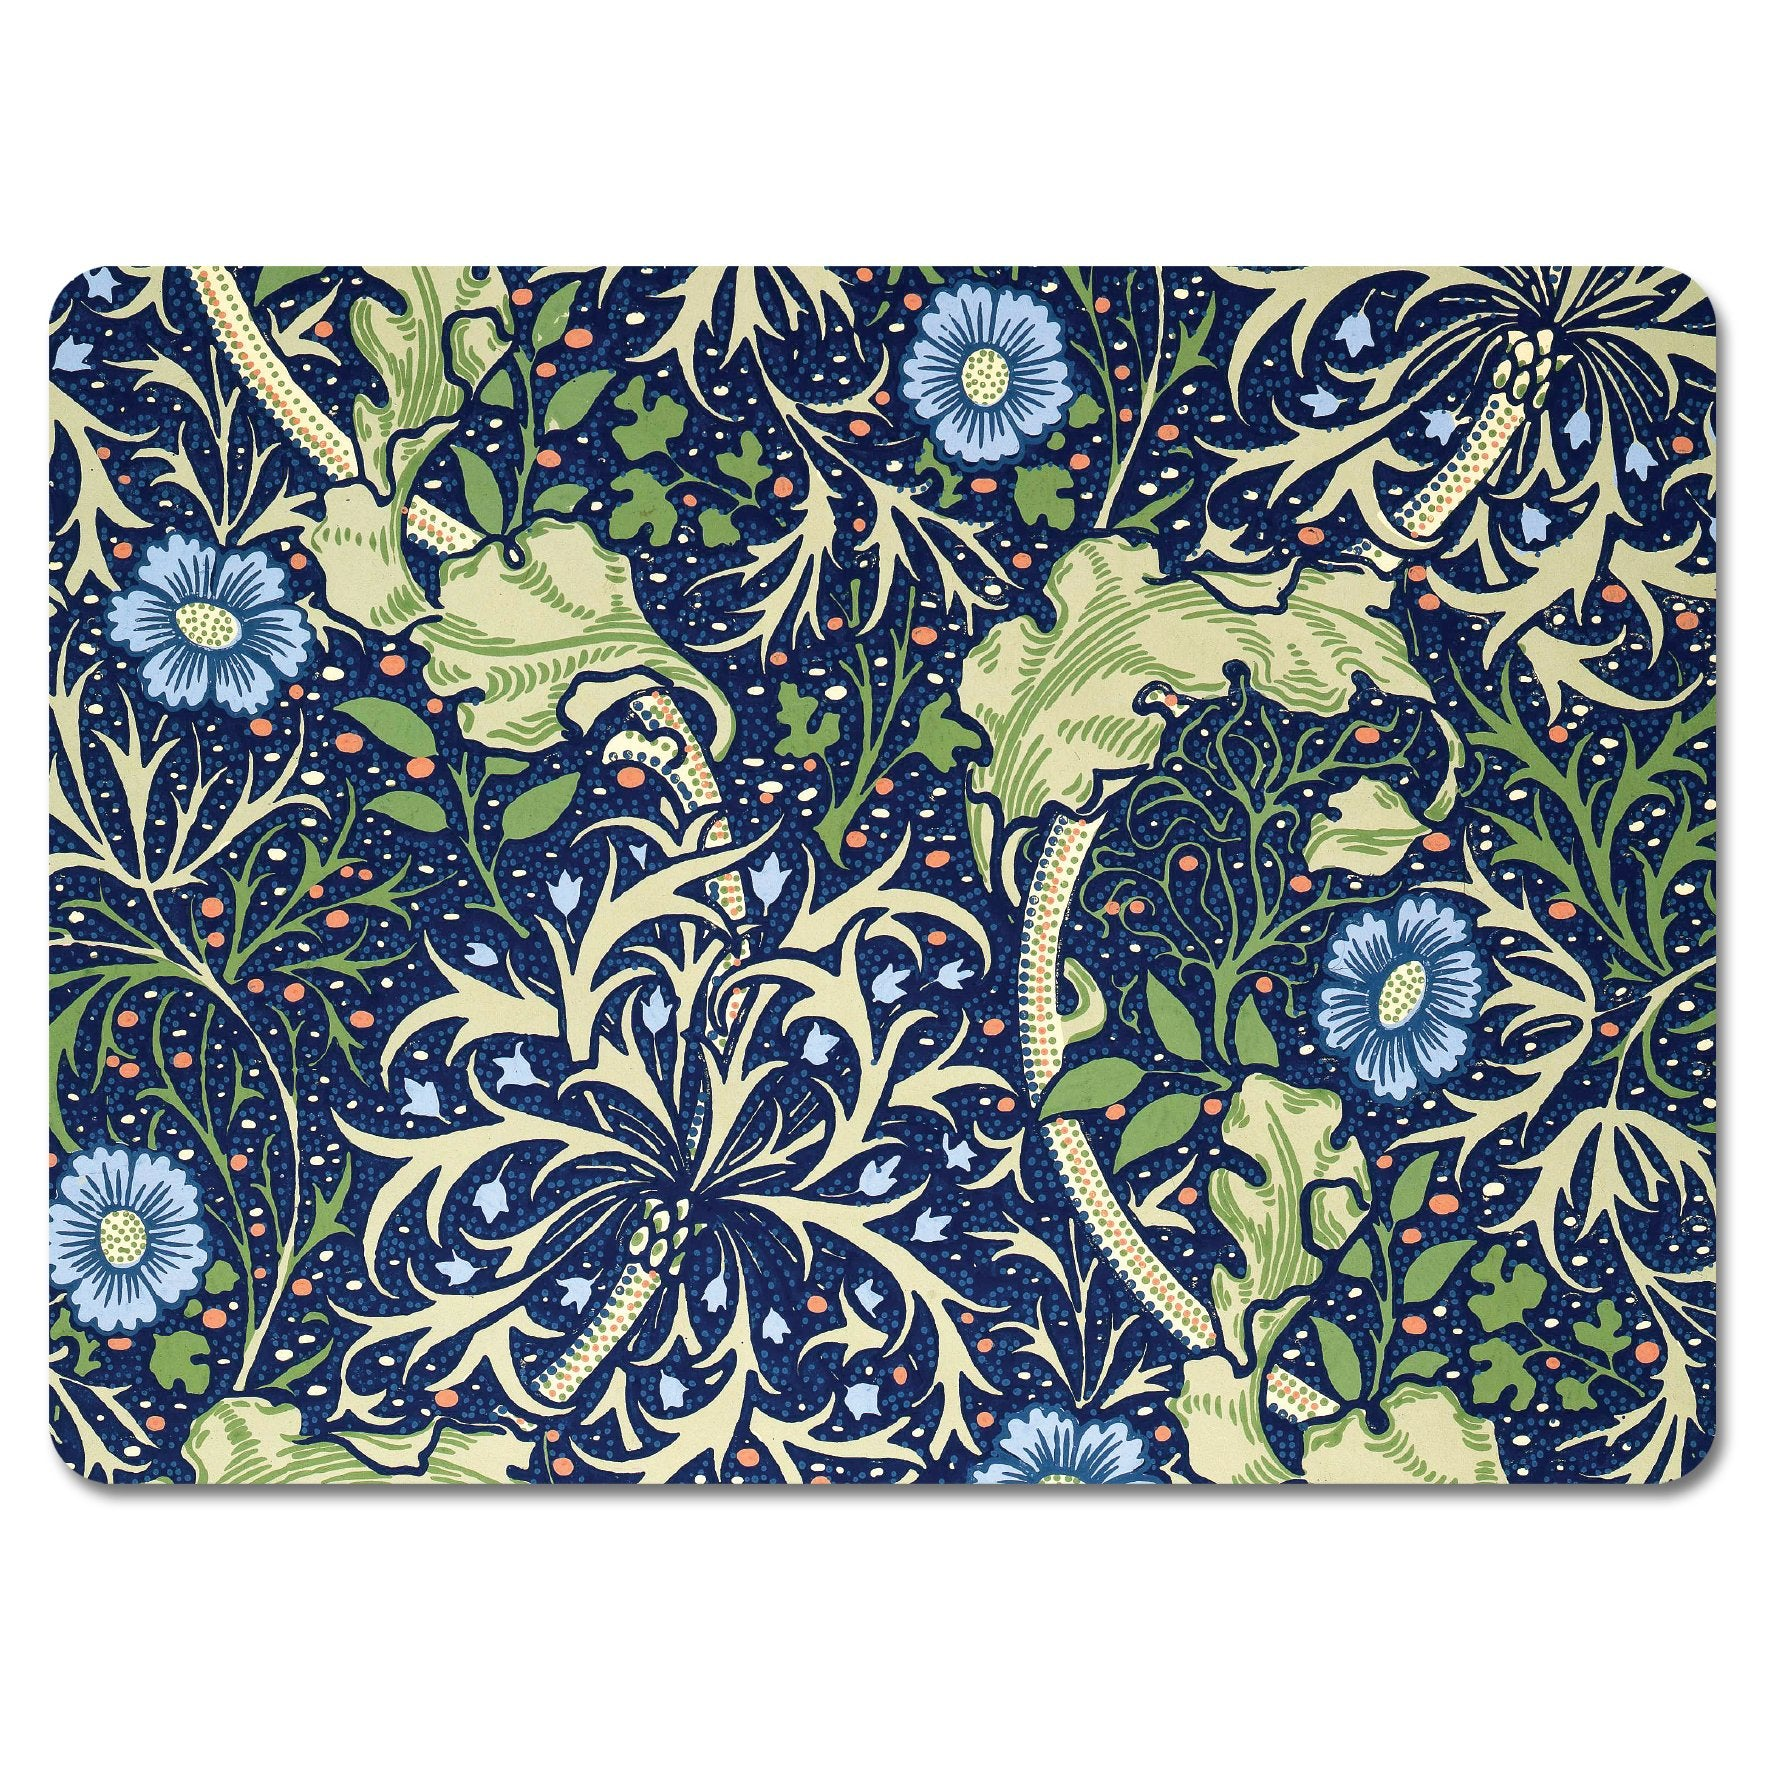 Seaweed<br>Tablemat Set of 4